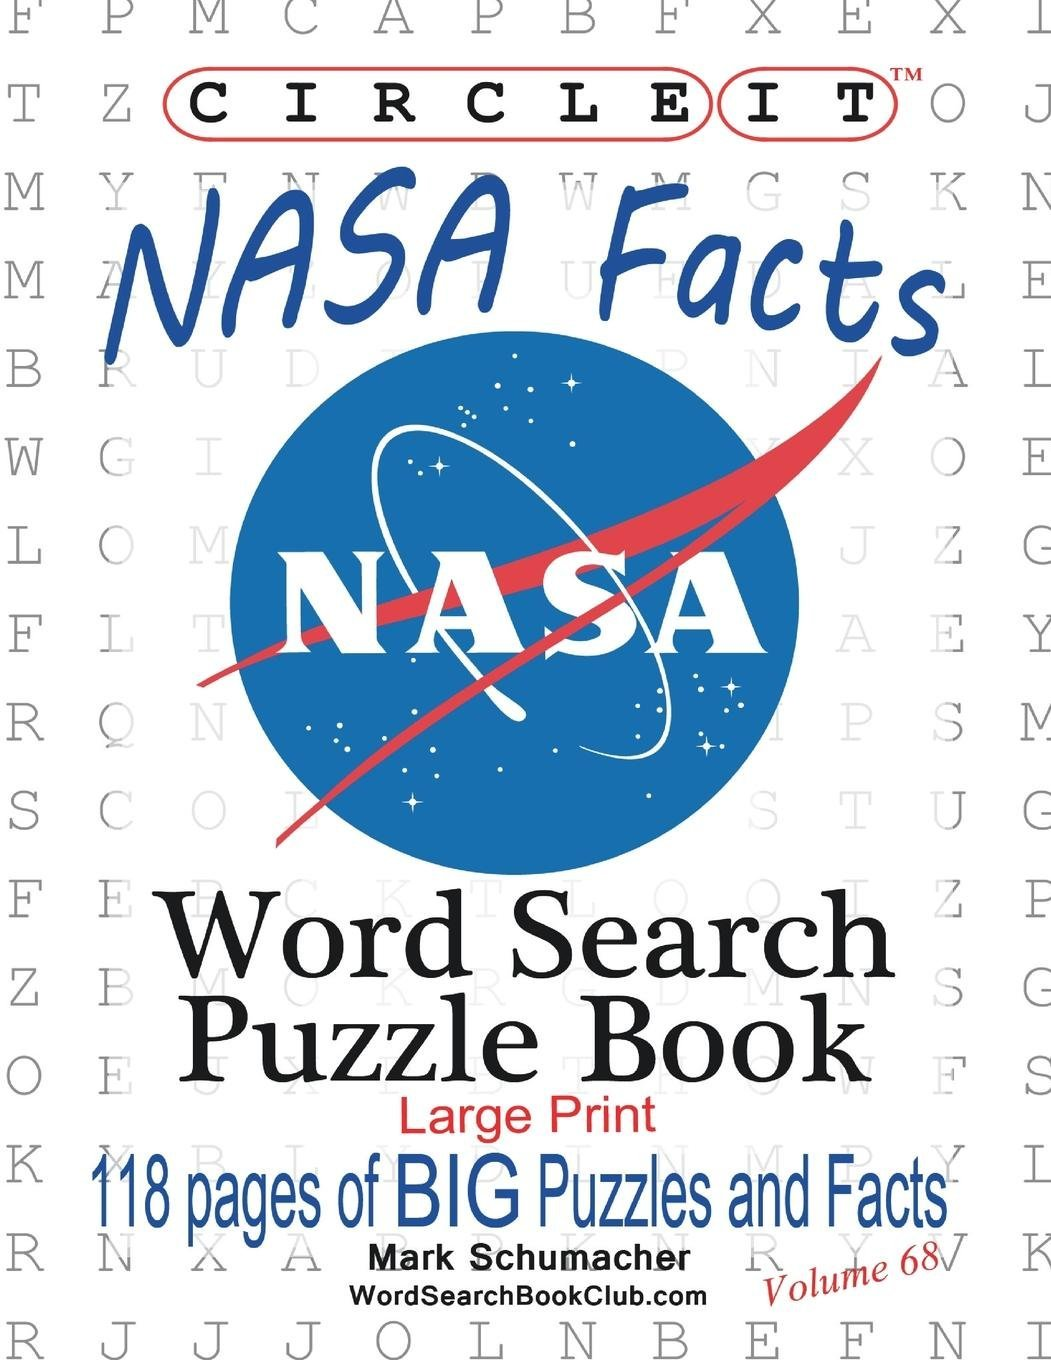 Download Circle It, NASA Facts, Large Print, Word Search, Puzzle Book ebook